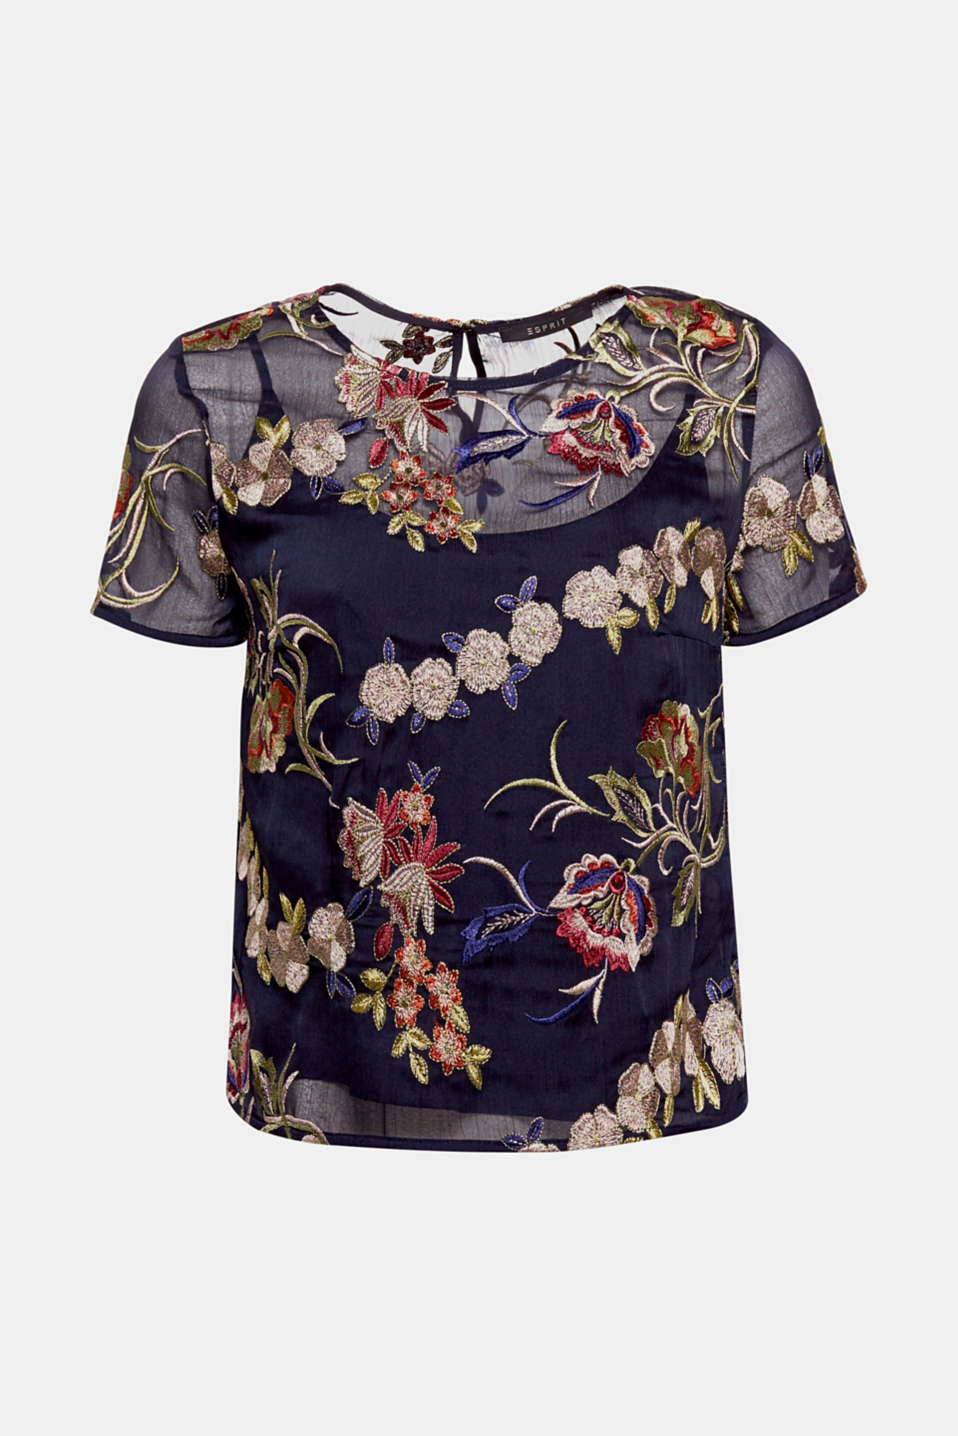 This blouse in a sheer crinkle chiffon with an integrated top is a bright eye catcher with its elaborate, colourful floral embroidery!